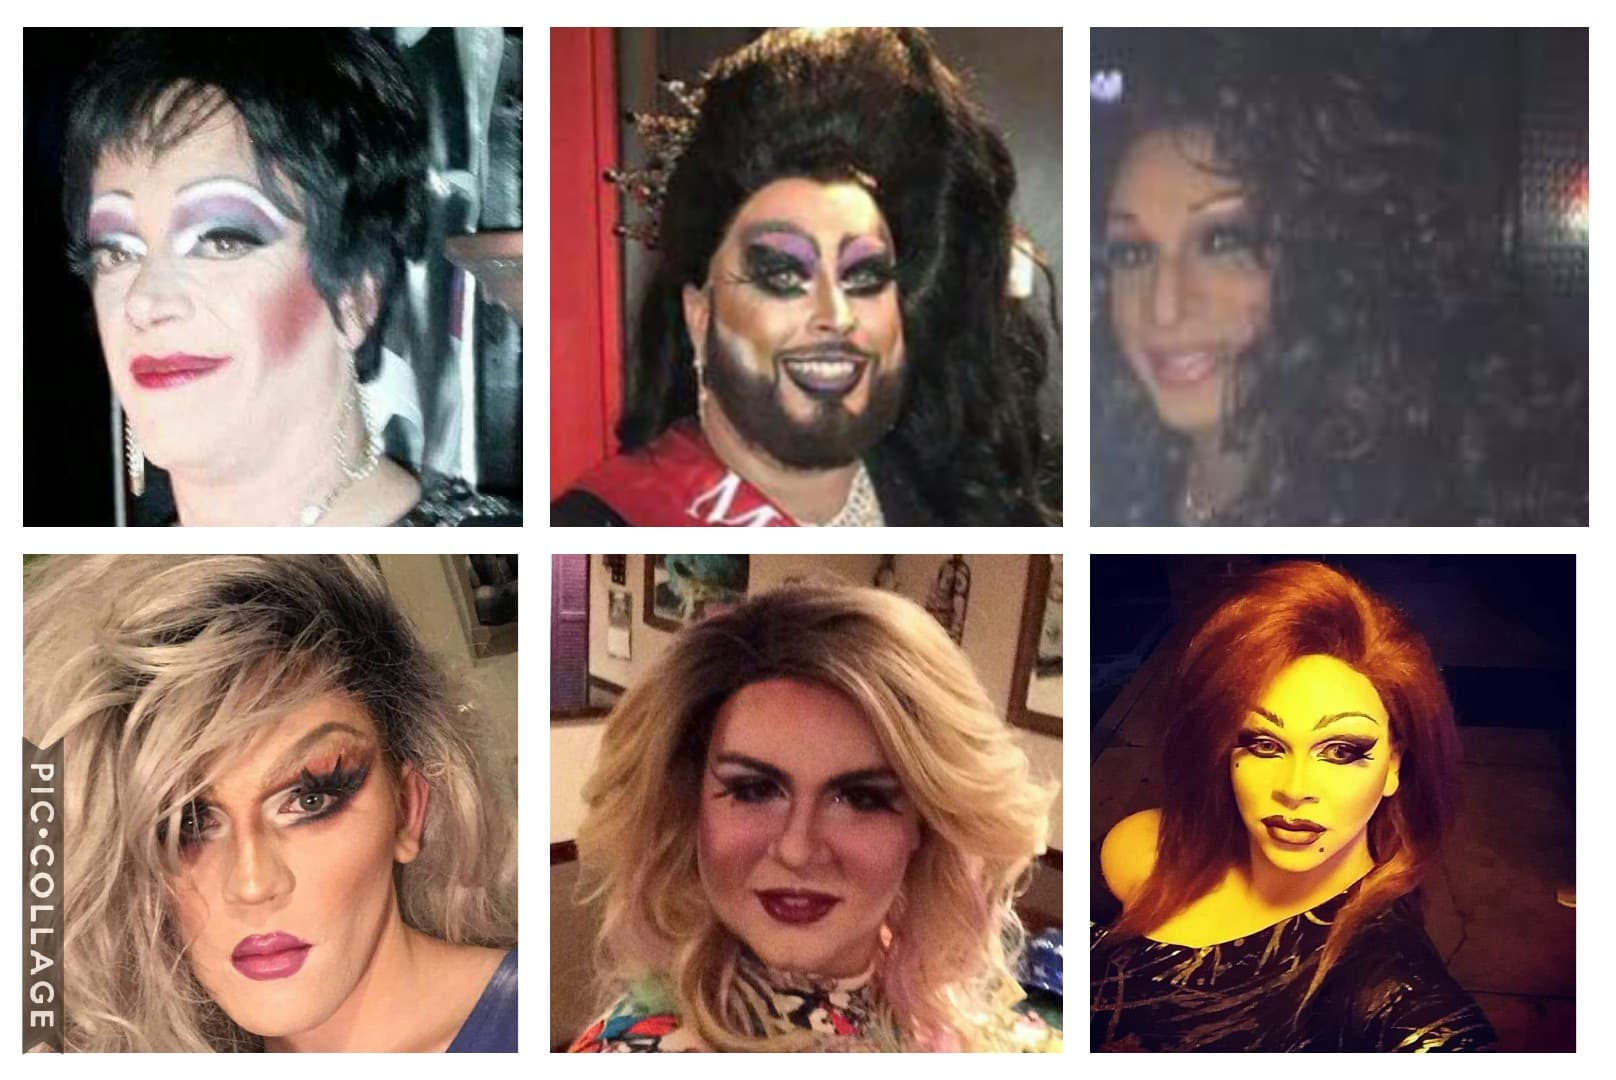 Collage of glamour shots of drag queens